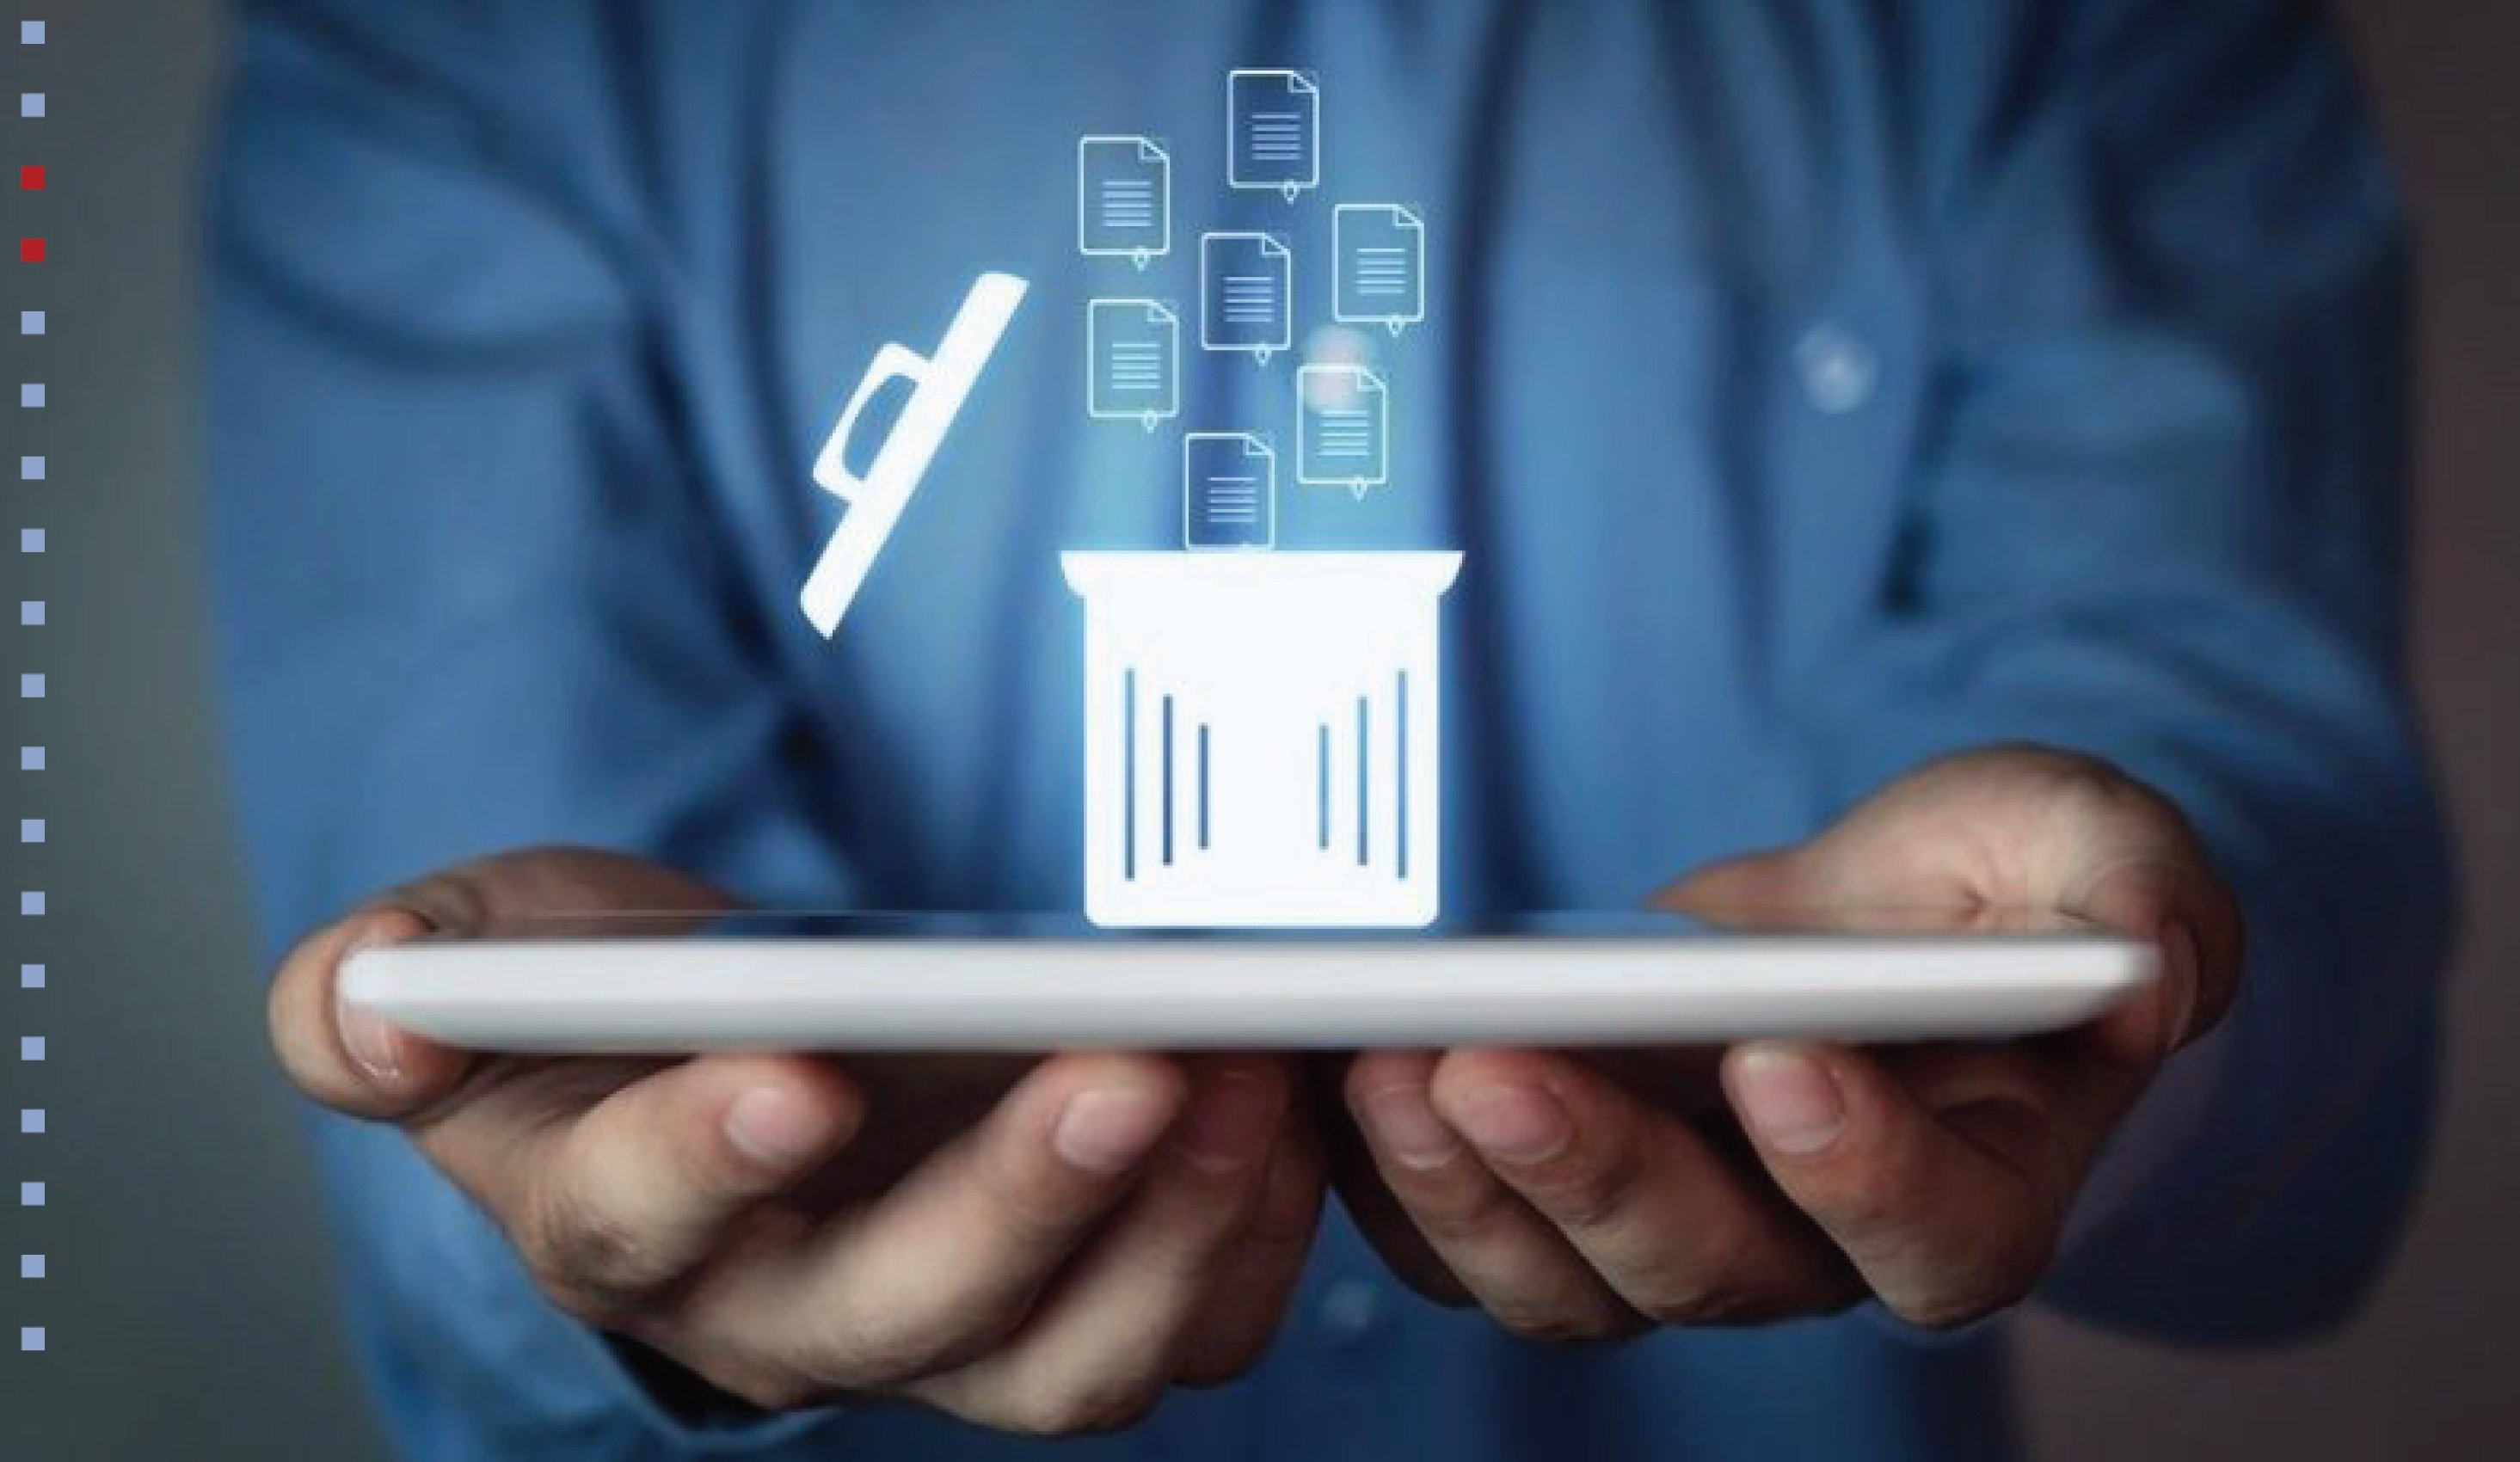 Proactive removal of data - now and forever more